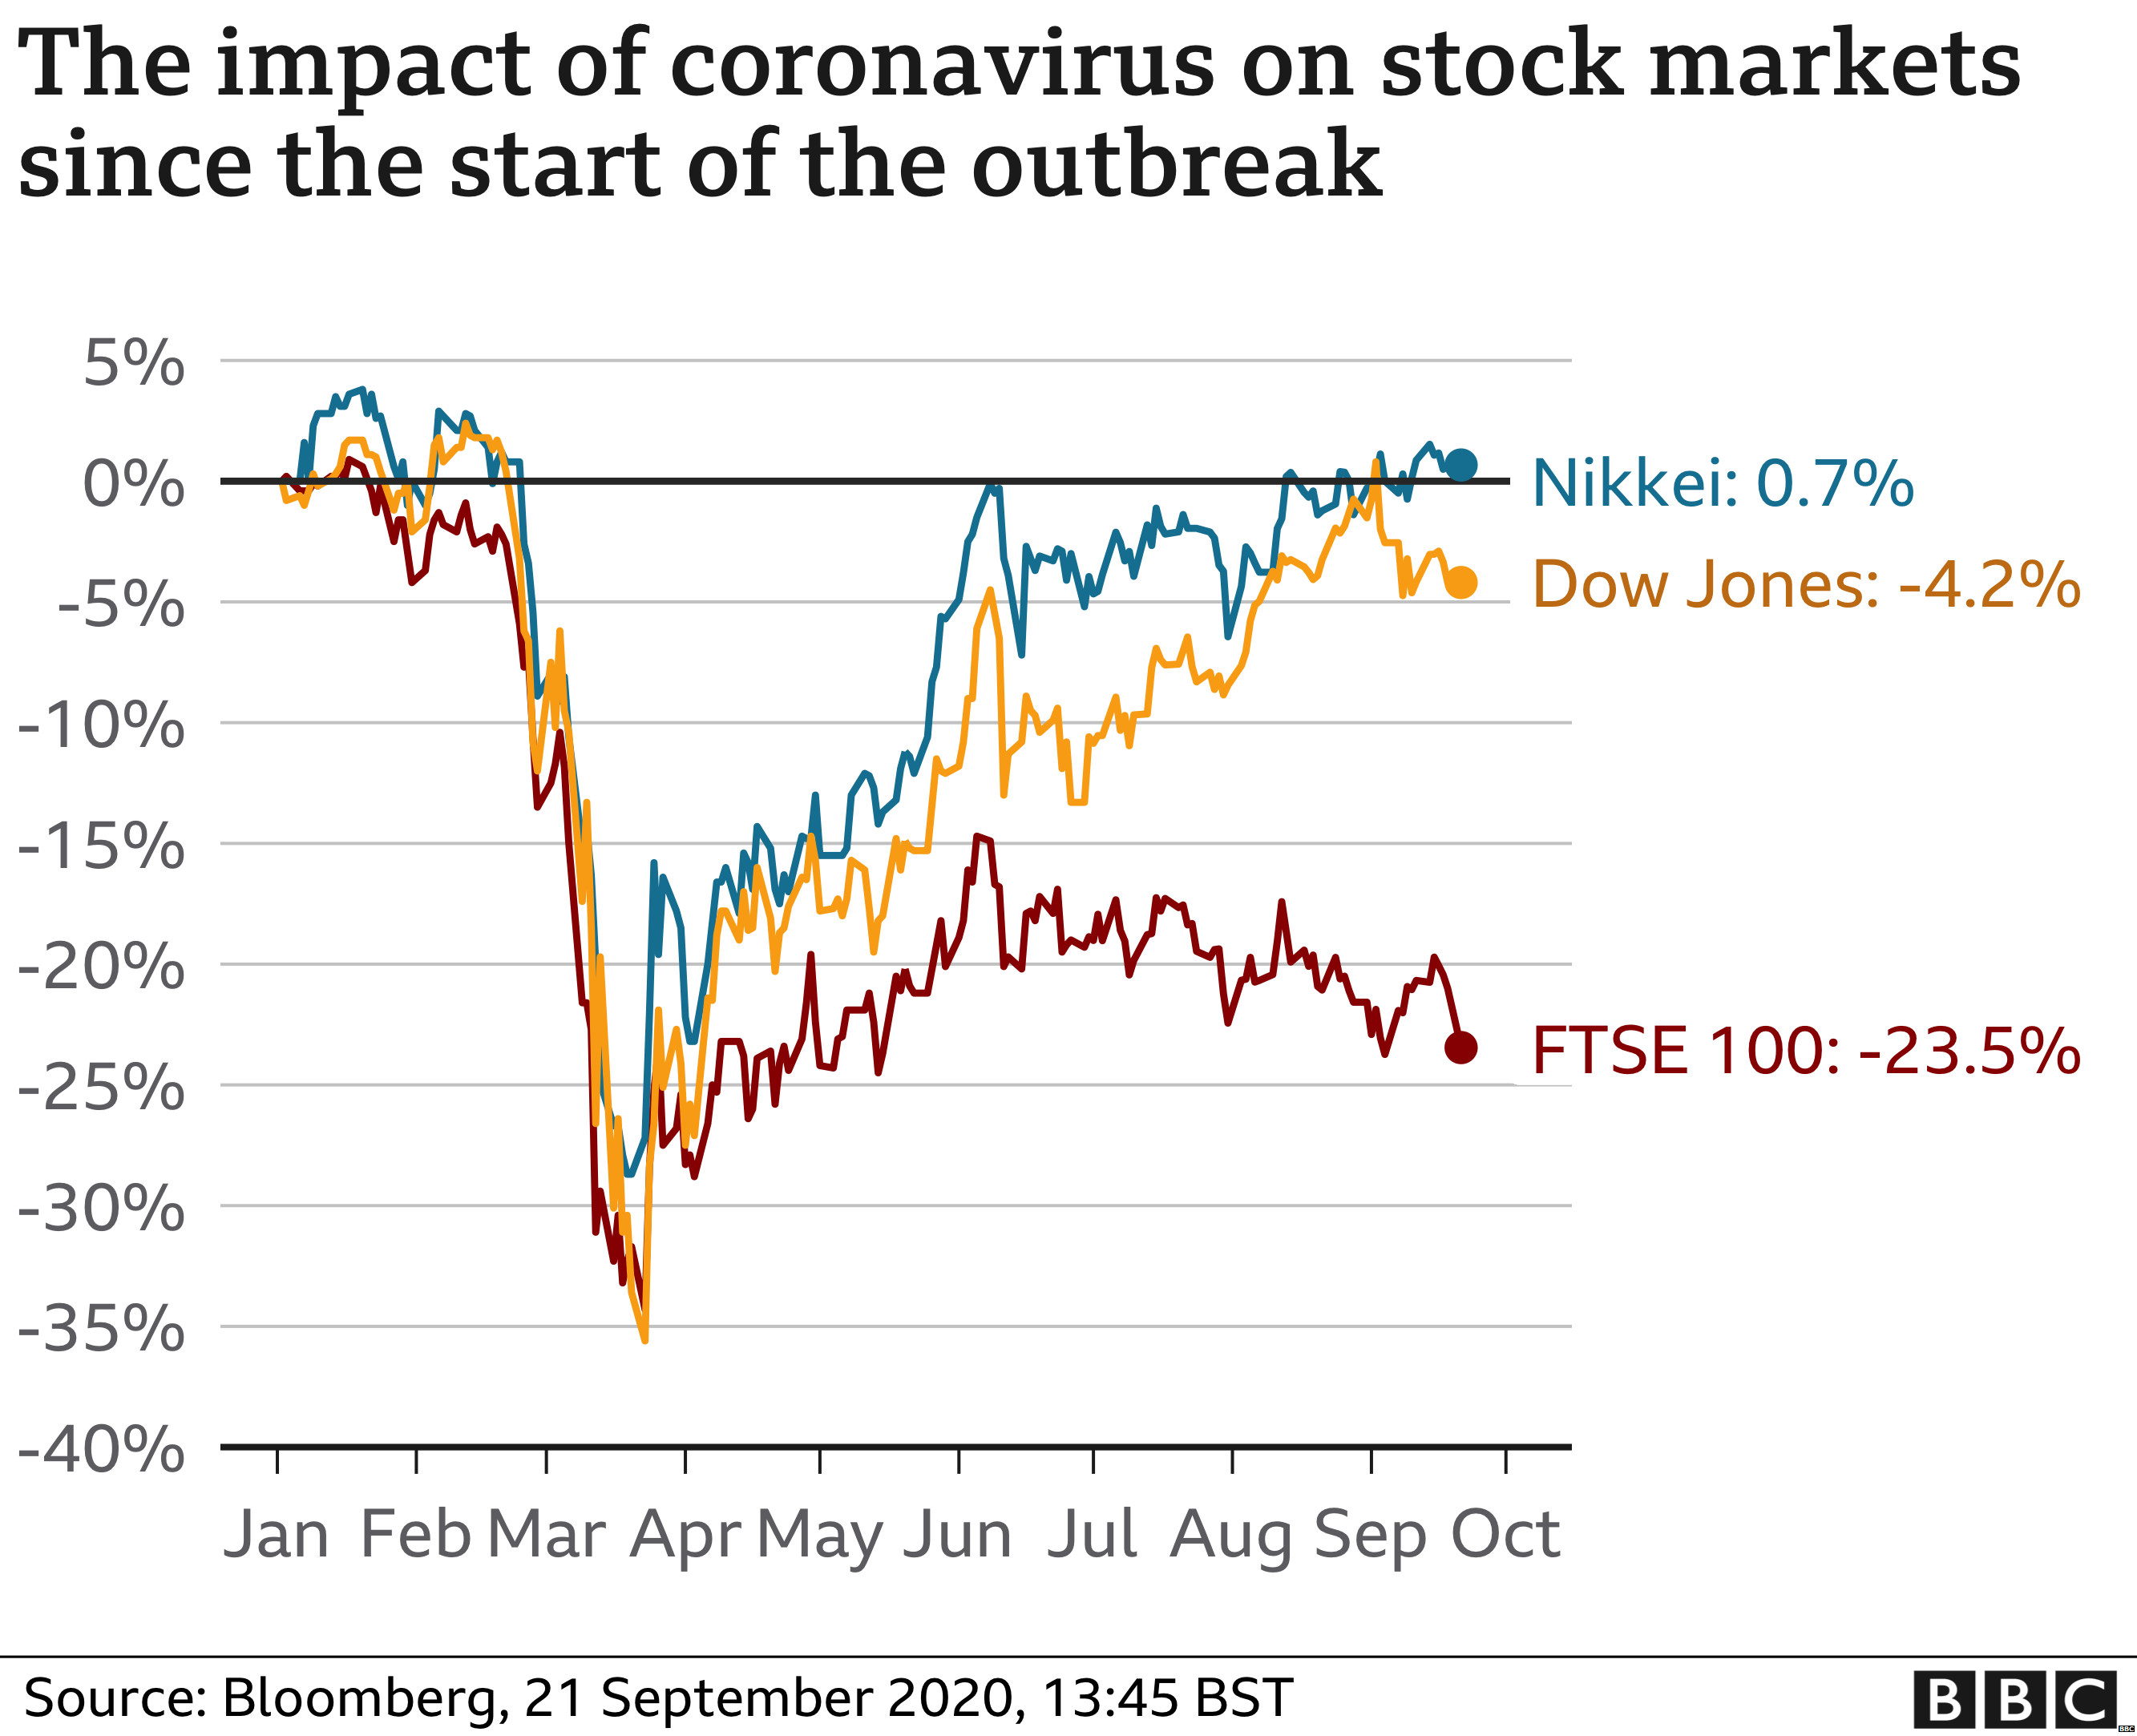 Chart showing leading share markets since start of outbreak